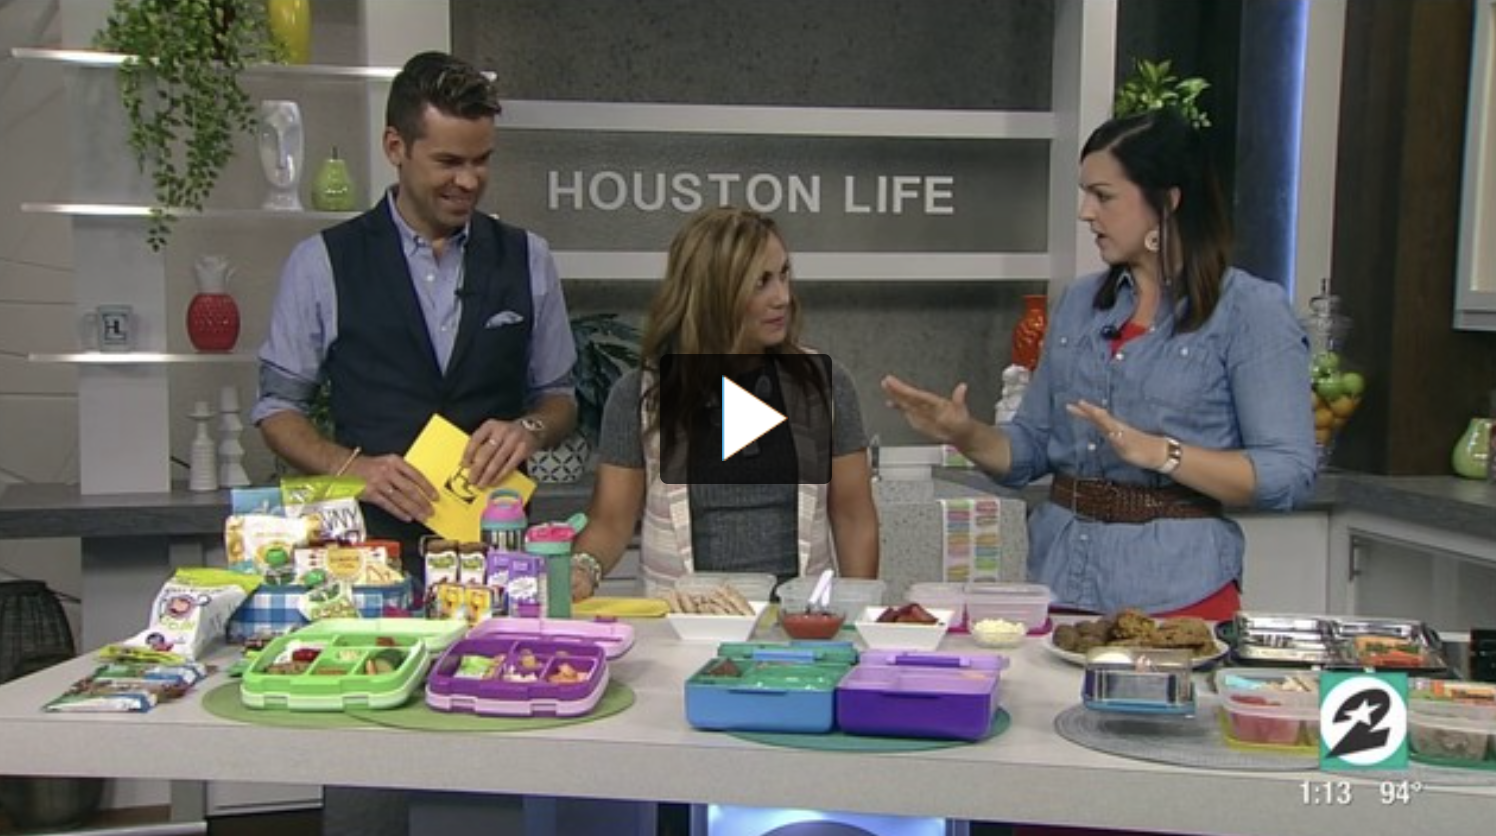 Catch me on TV! - ...discussing trending nutrition topics, yummy recipes, and helpful kitchen hacks!